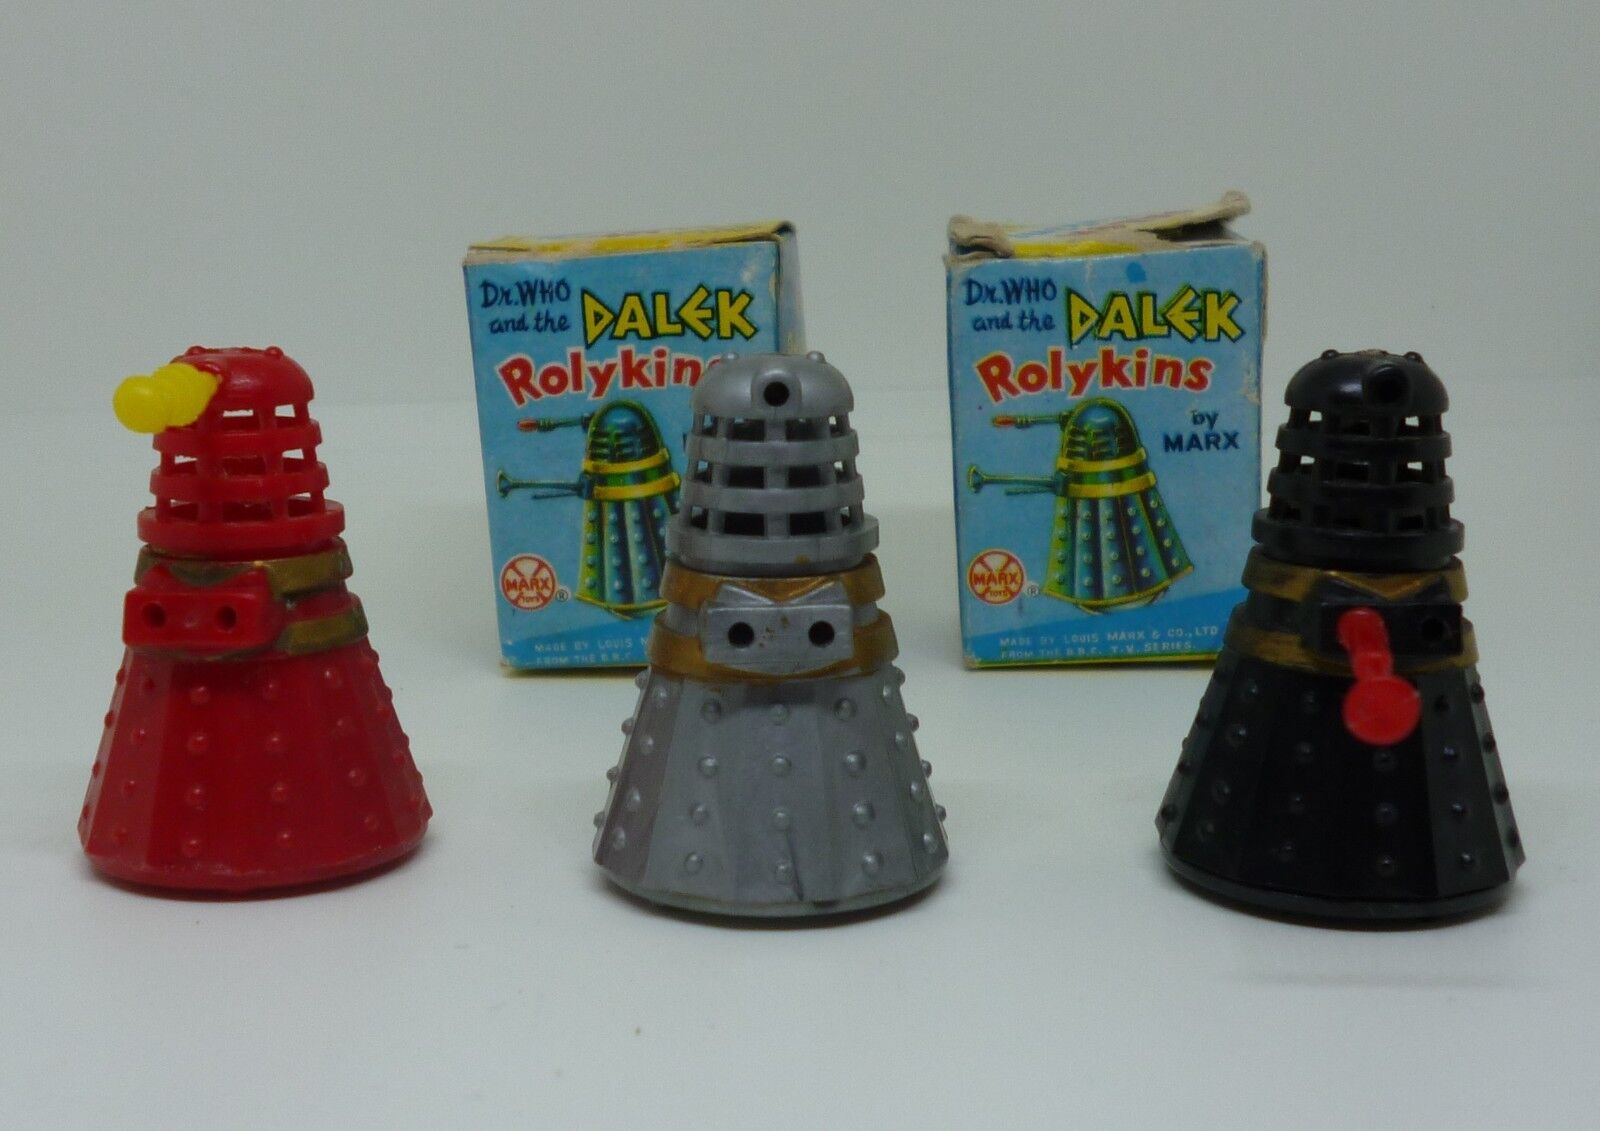 Vintage 1965 Marx Rolykins Doctor Who Daleks With Original Boxes Set Of Three